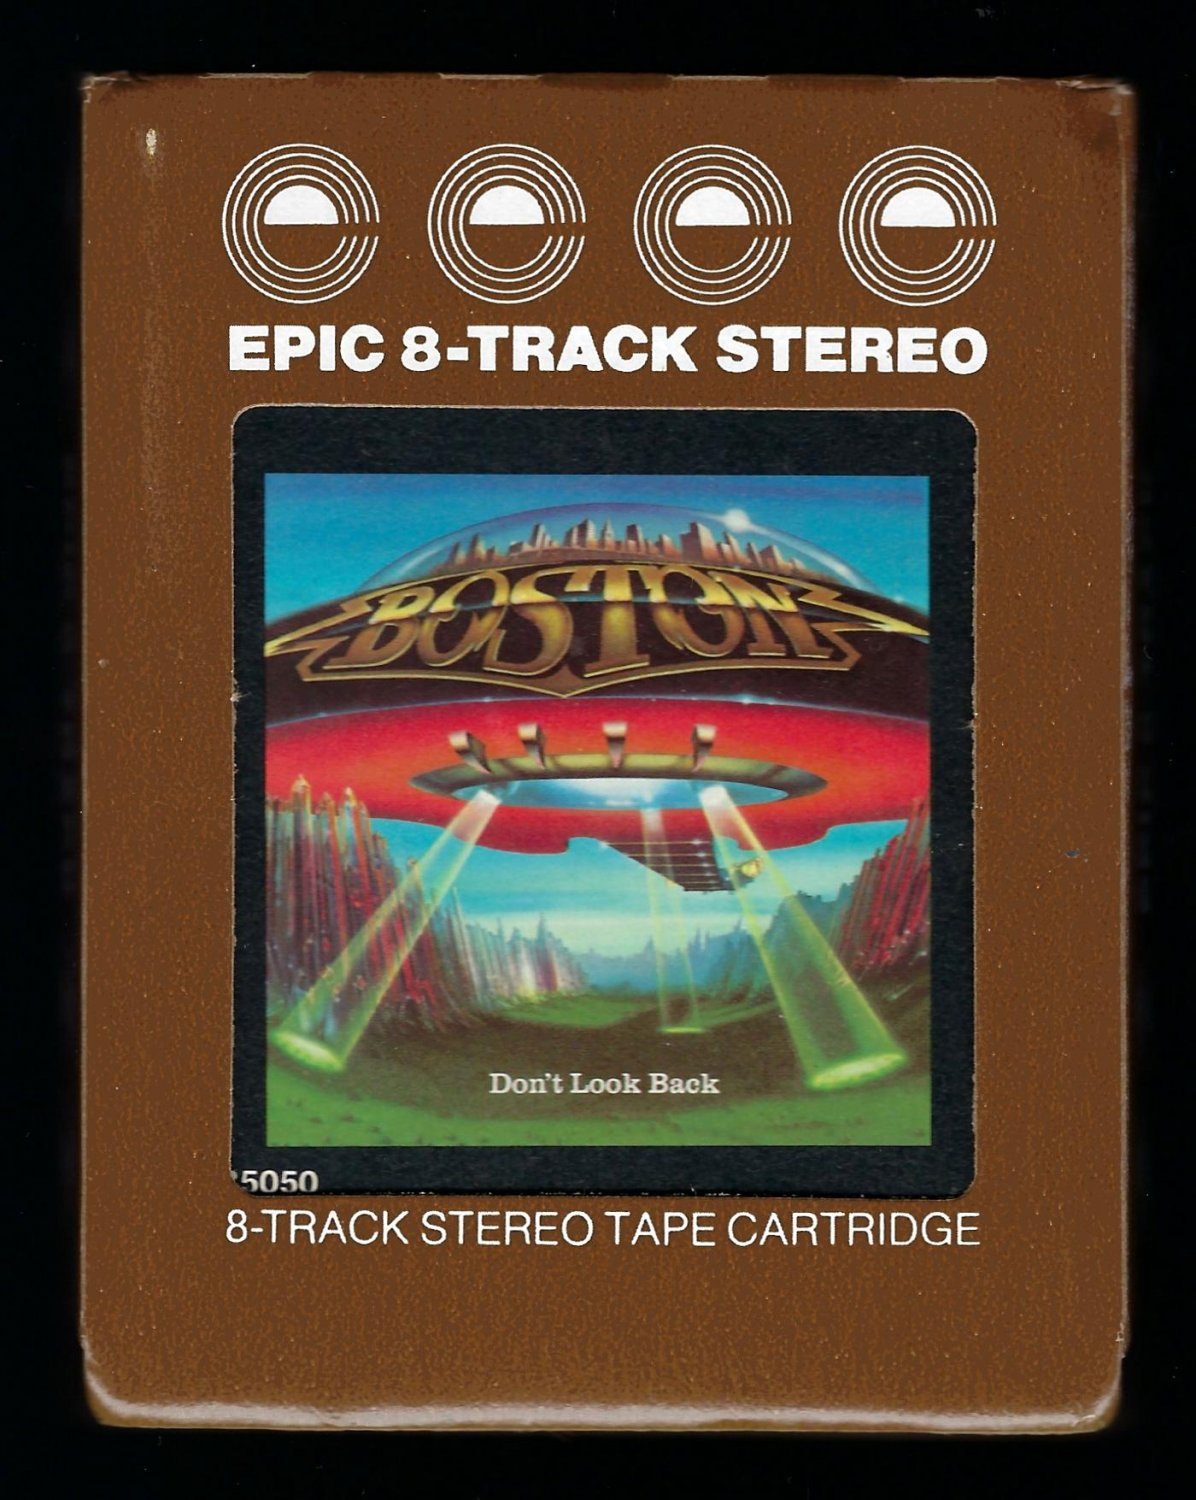 Boston - Don't Look Back 1978 EPIC A32 8-TRACK TAPE